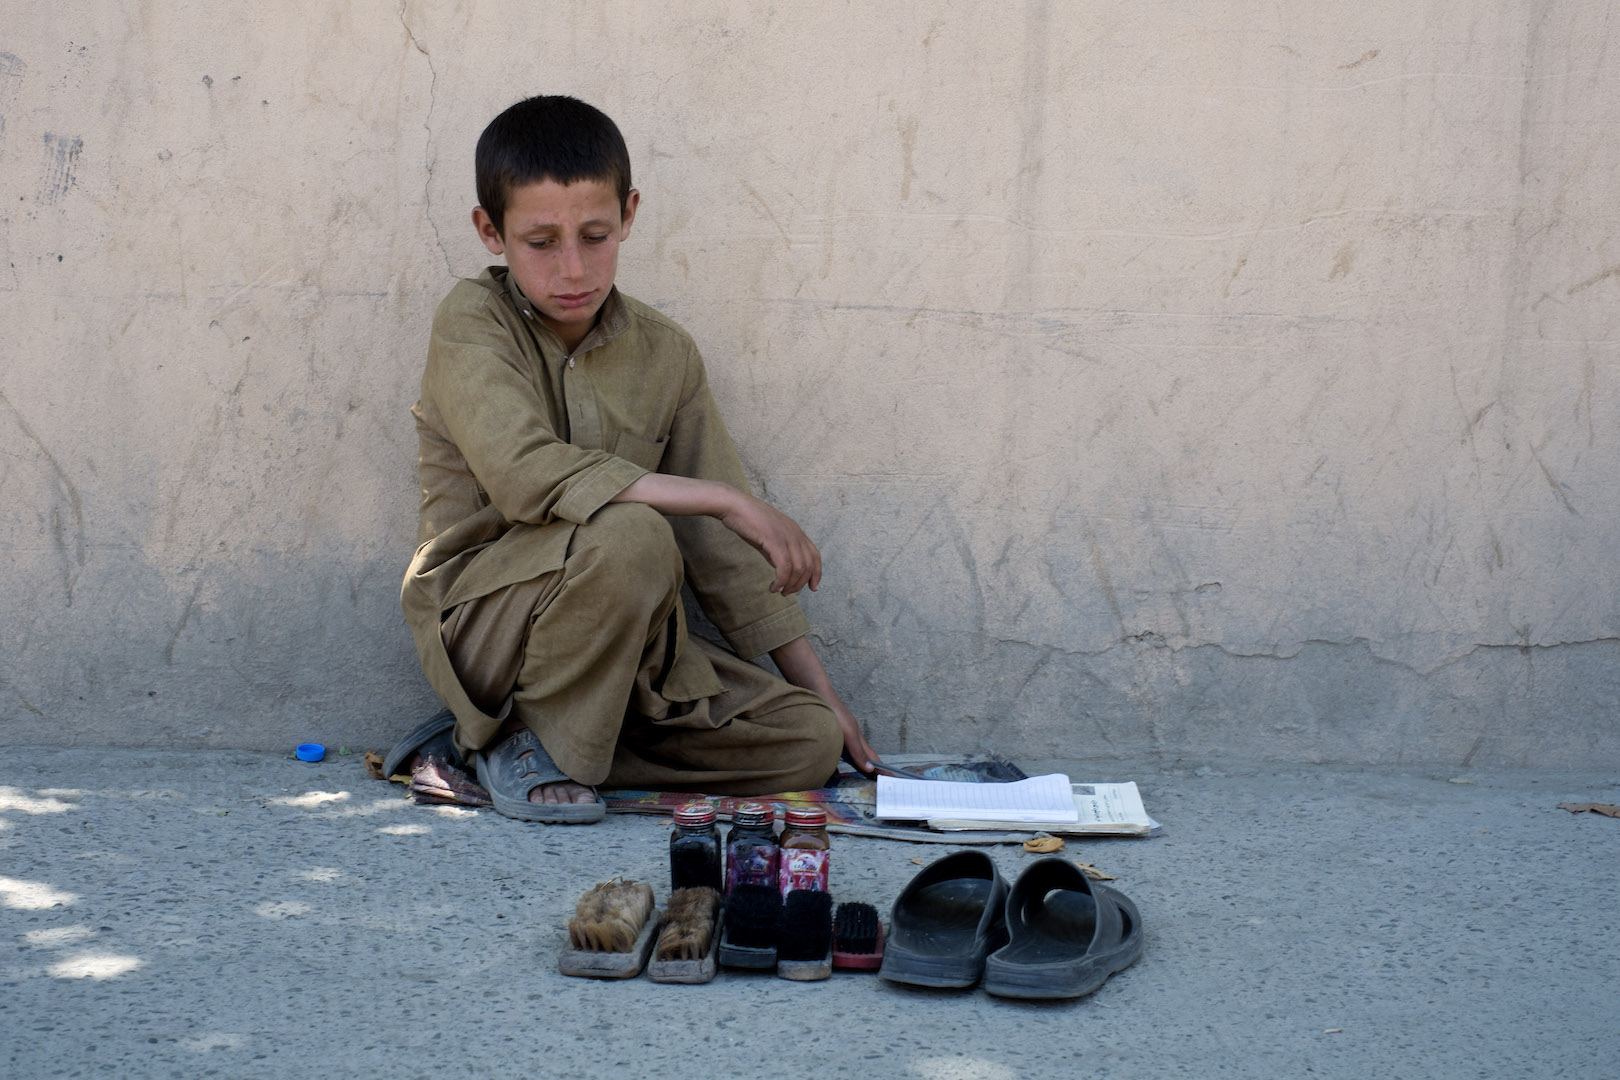 A shoeshine boy in Kabul